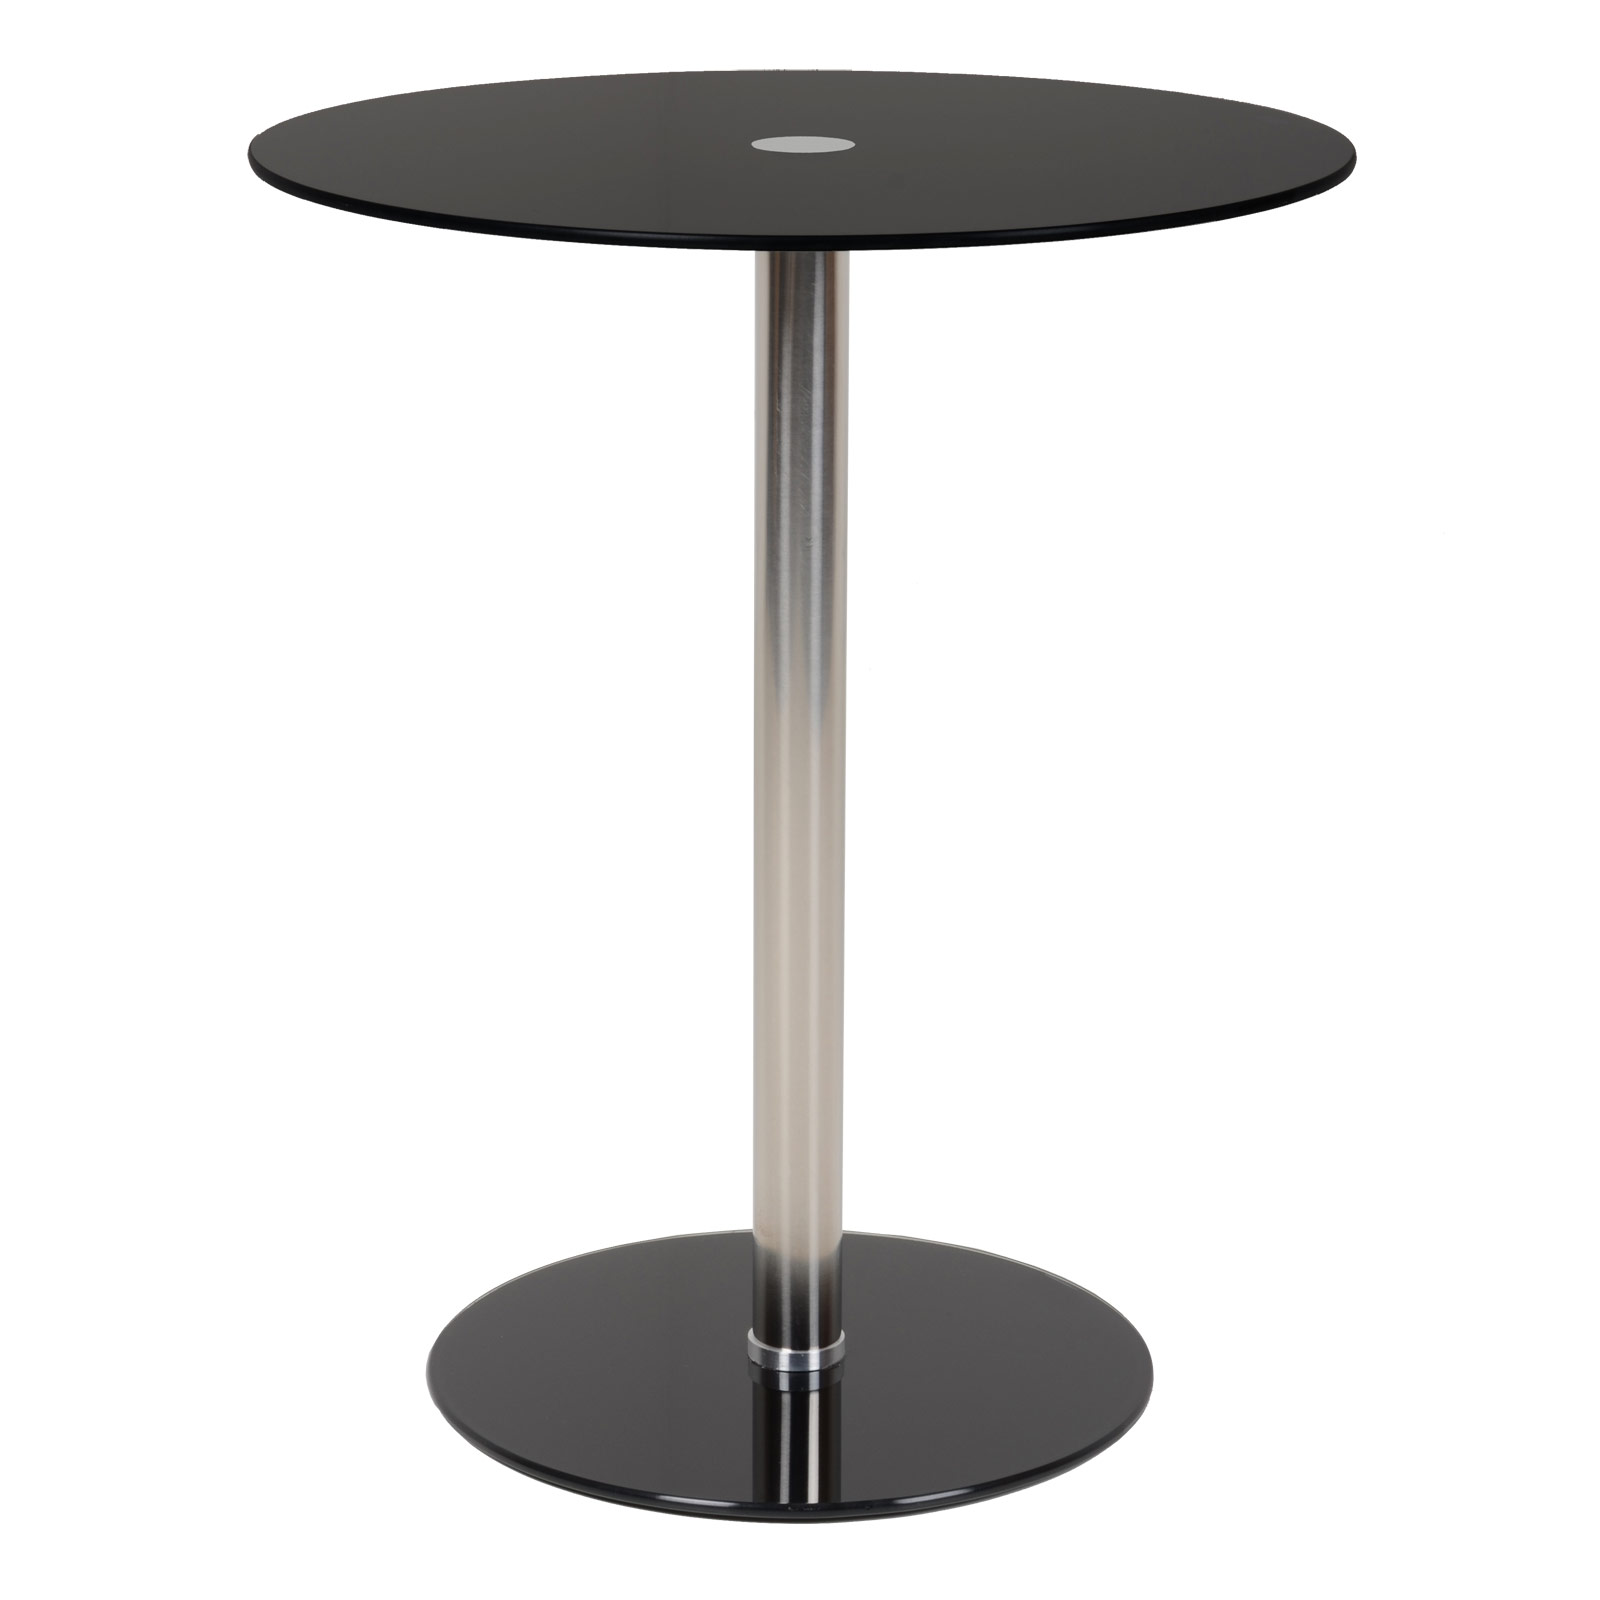 Nova black round modern glass top side table sidebar - Glass side tables for living room uk ...